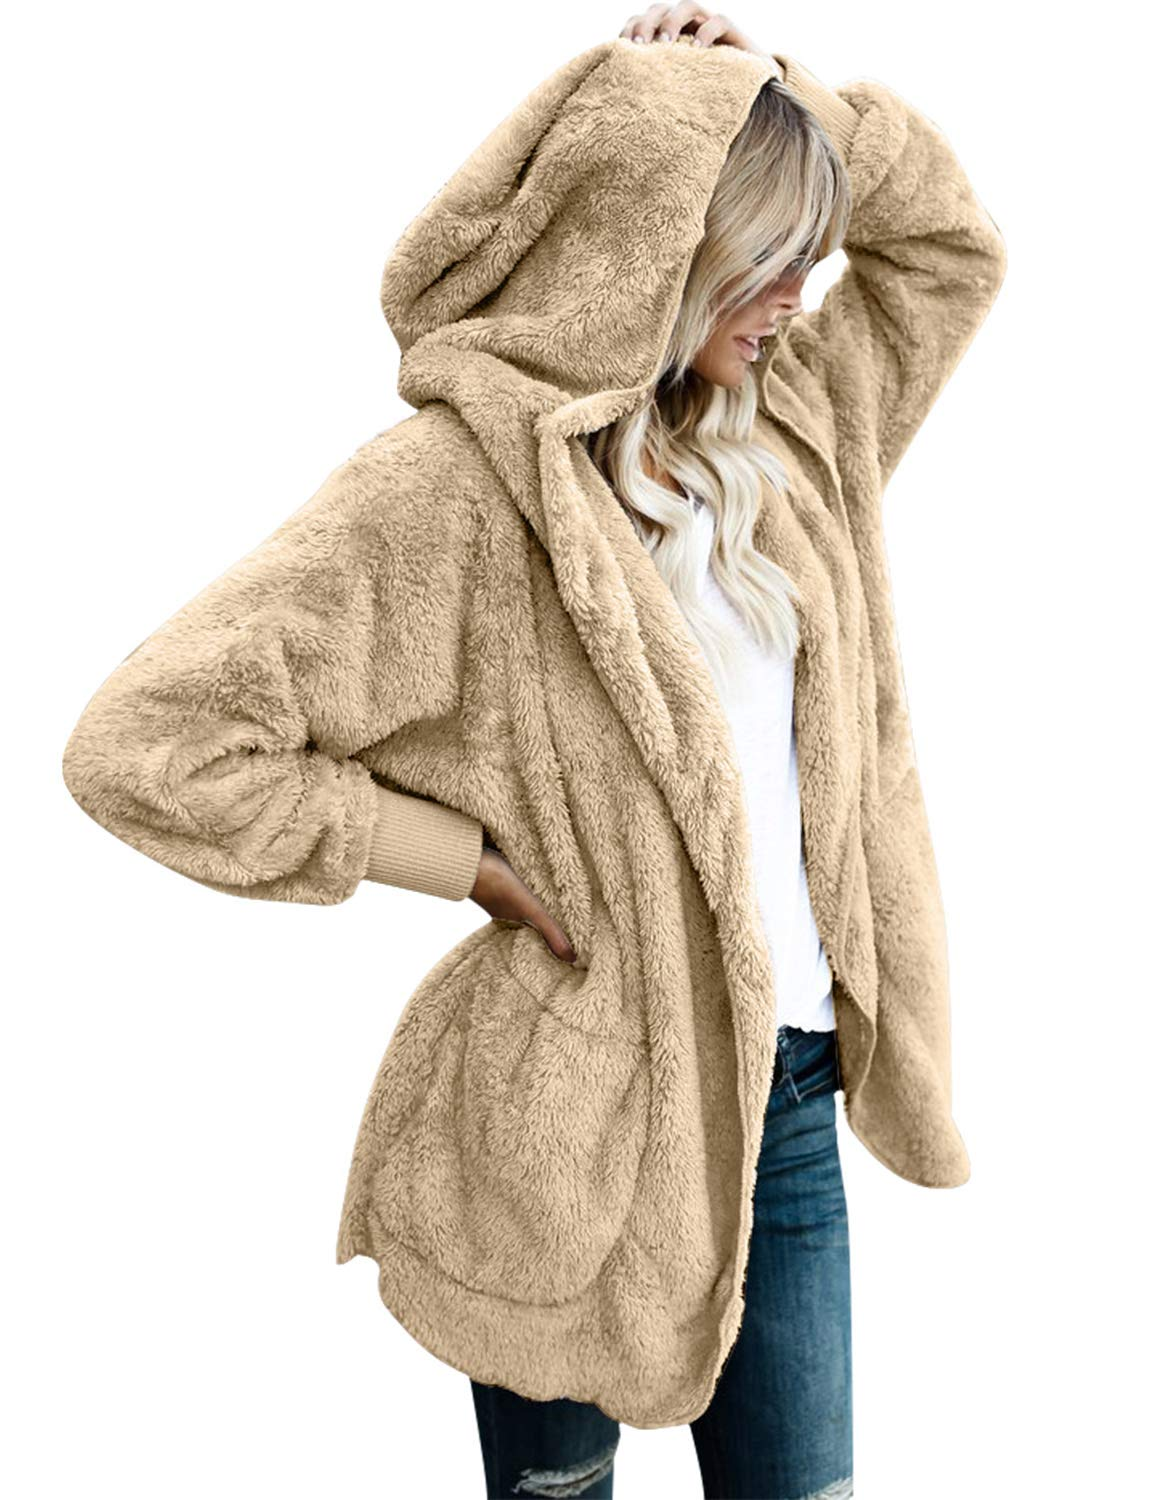 Vetinee Women's Faux Fur Coat Hooded Cardigan Fuzzy Fleece Long Jacket Outerwear Apricot Size M